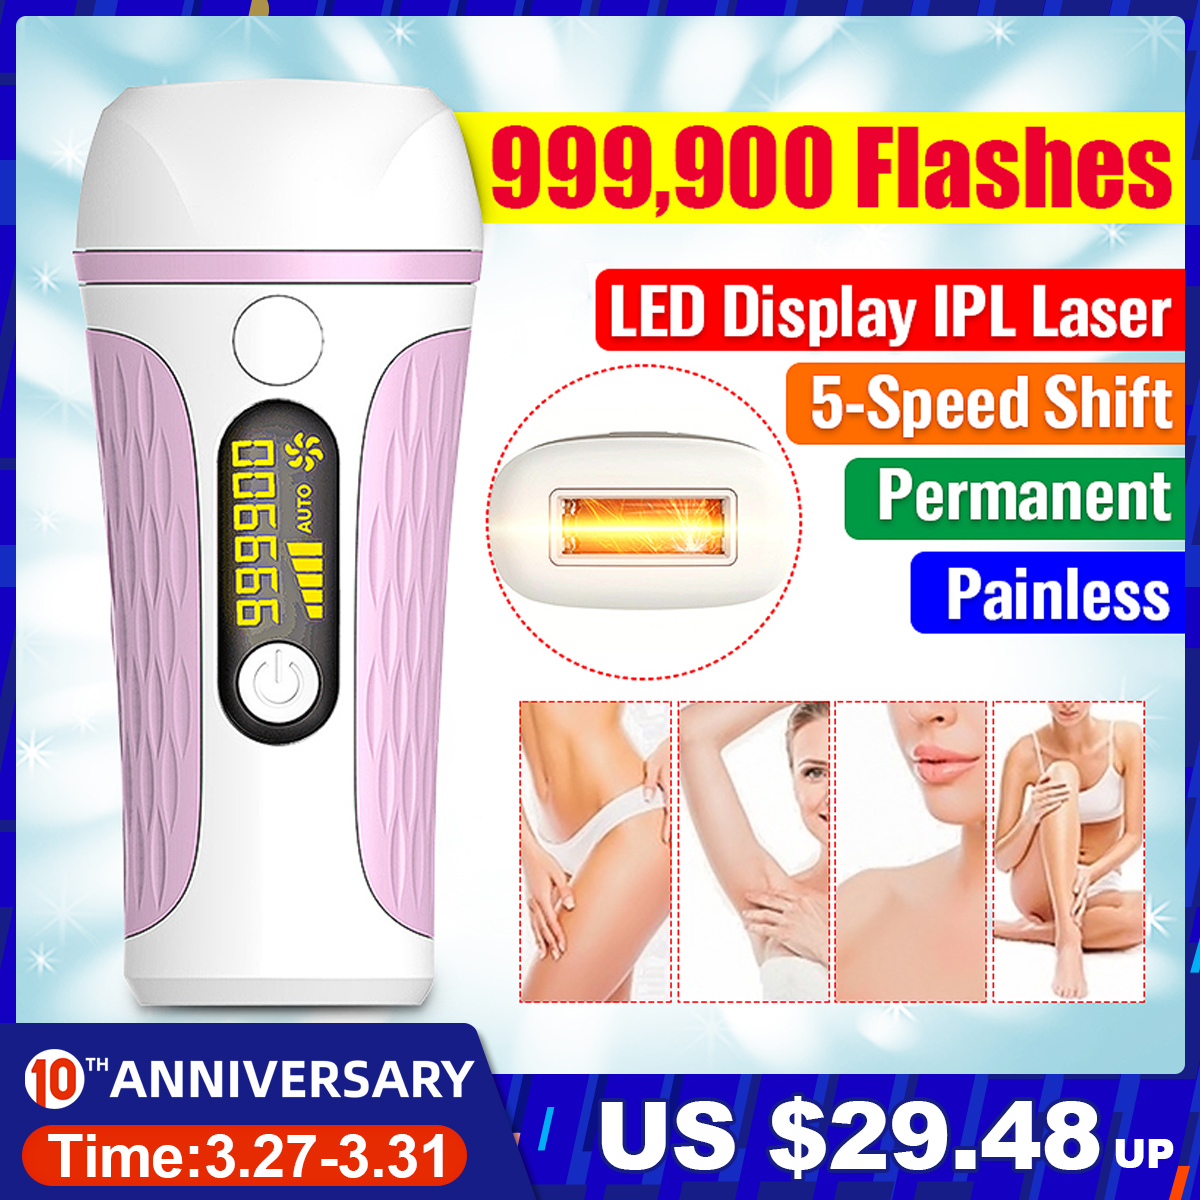 NEW 999,900 Flash Professional Permanent IPL Epilator Laser Hair Removal LCD Display Bikini Painless Hair Remover Machine